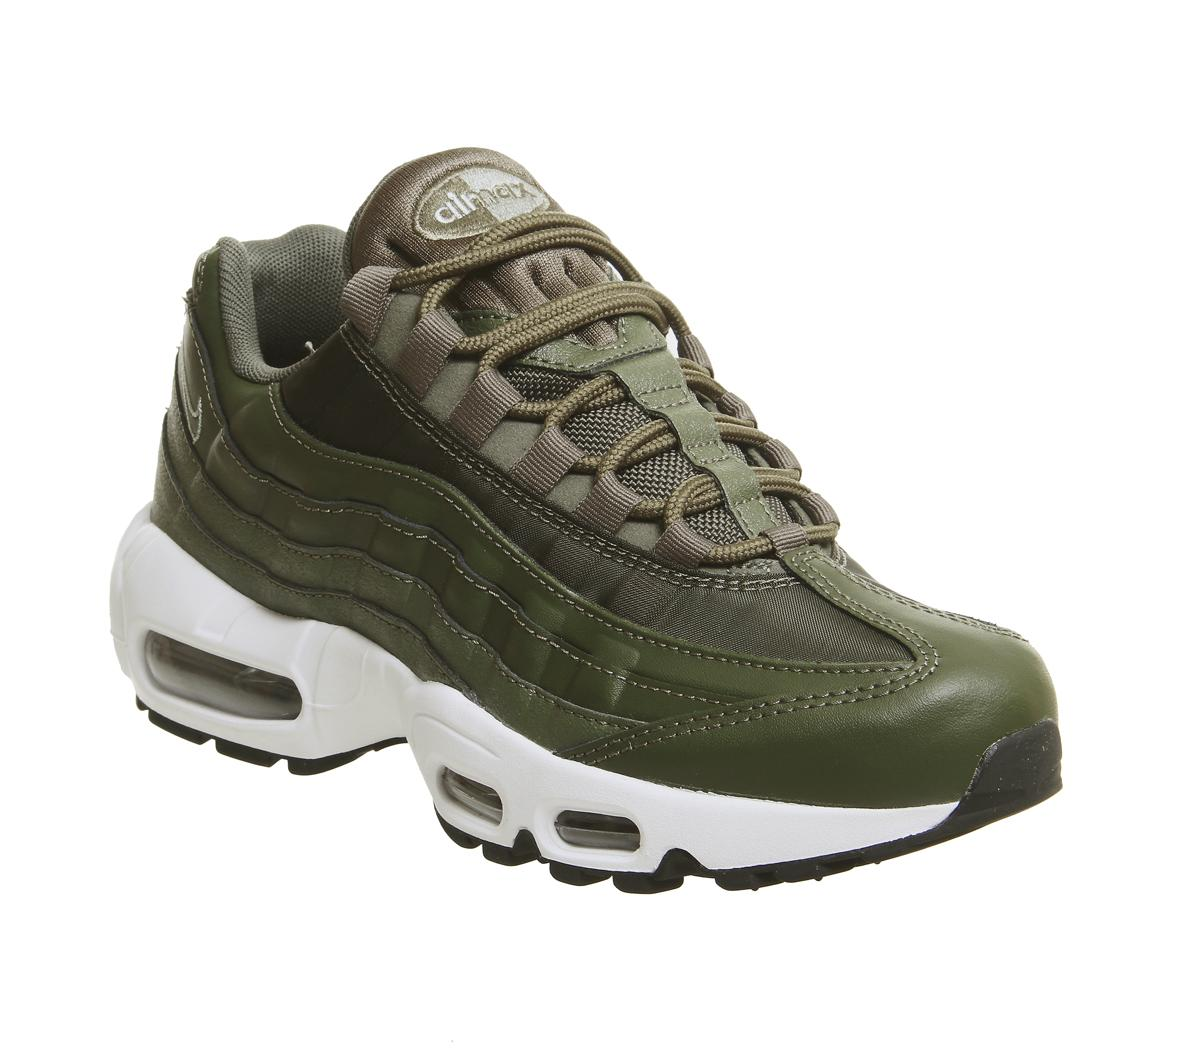 nike free 5.0 damen reduziert, herren Air Max 95 Leather Up